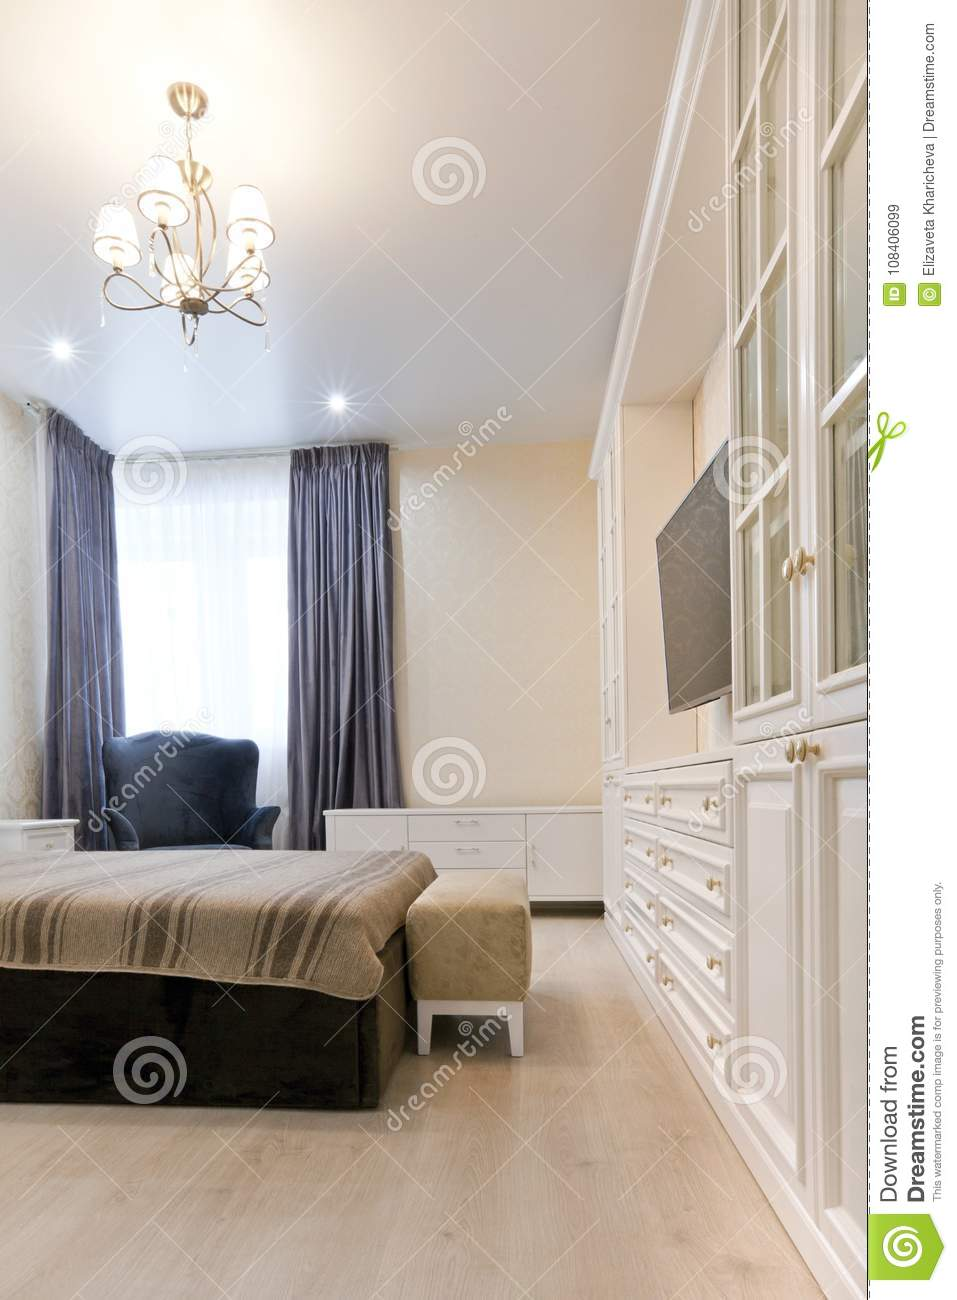 Download Bedroom In Light Colors With Dark Bed And Blue Curtains Stock  Image   Image Of